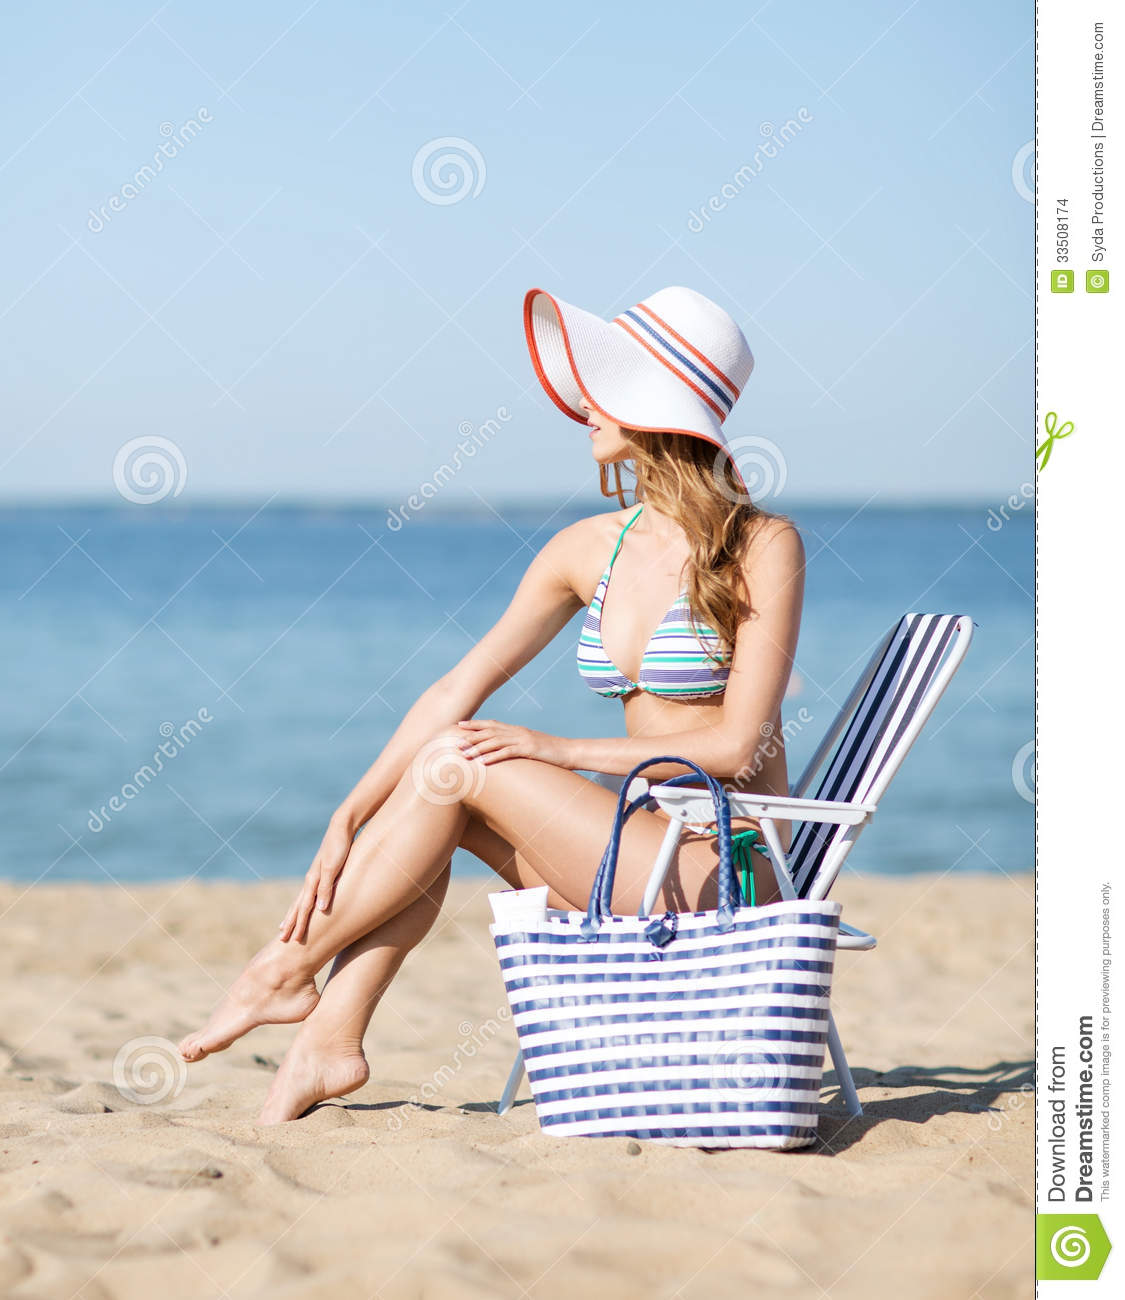 Girl Sunbathing The Beach Chair Stock Image